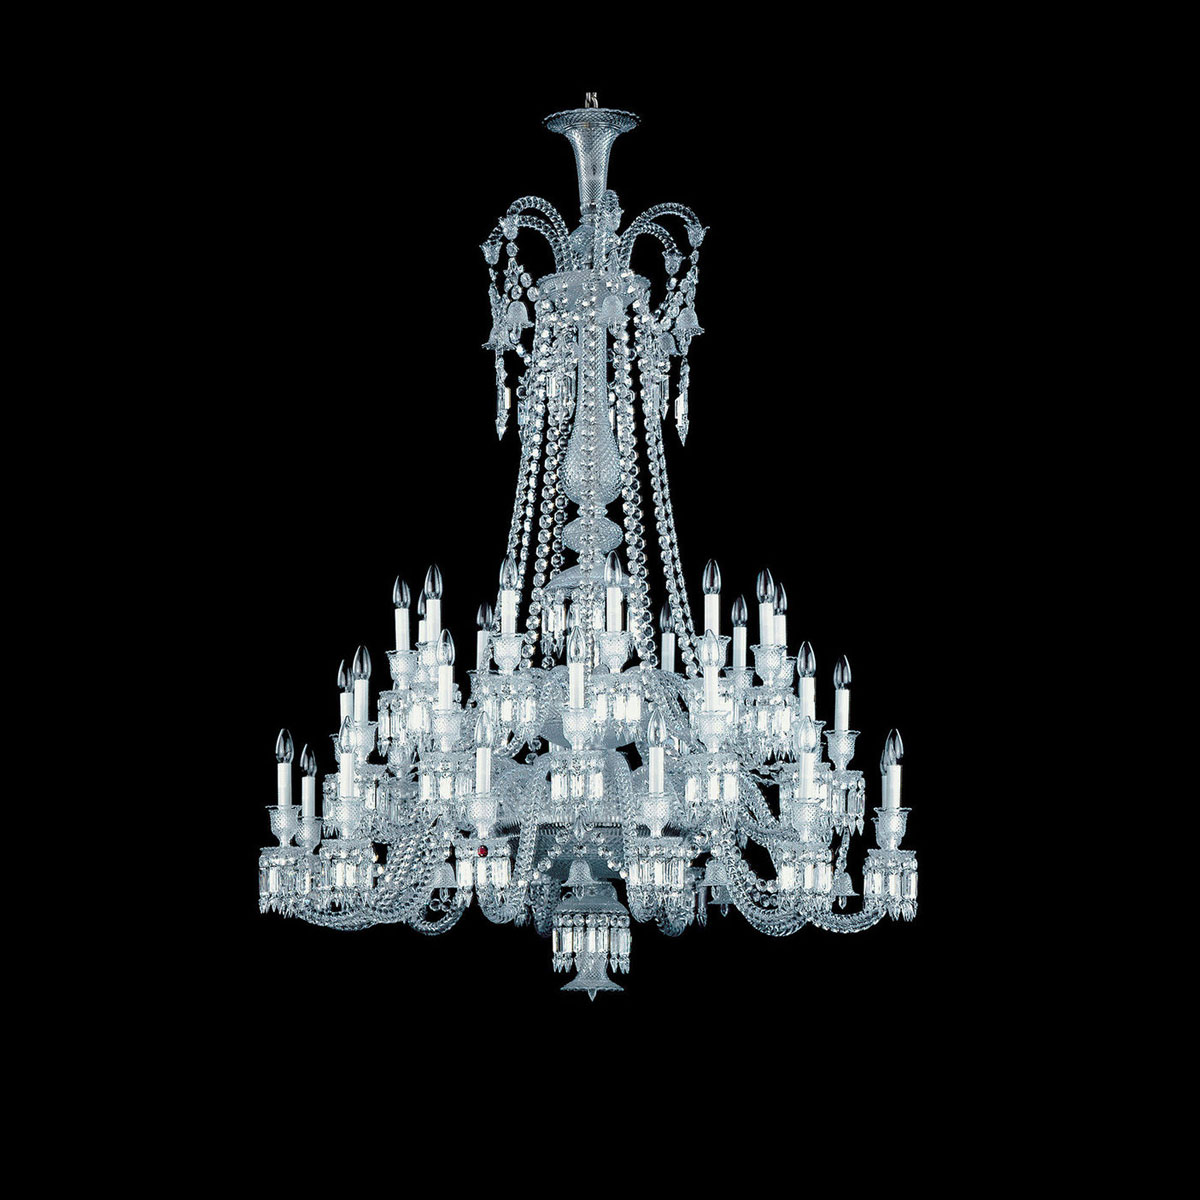 Baccarat Crystal, Zenith Long Chandelier, 36 Light